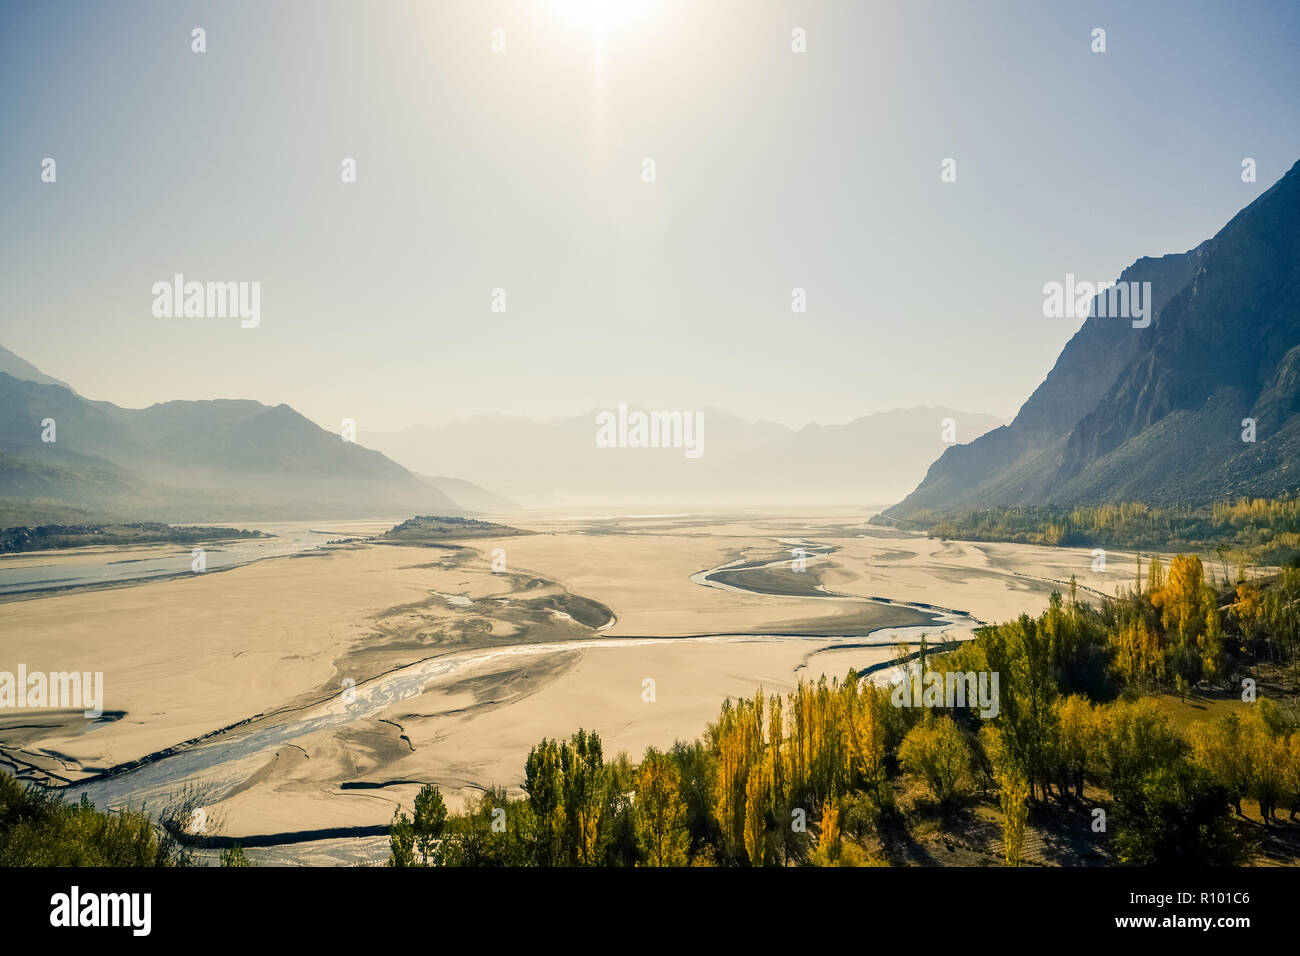 Skardu landform shows desert with Indus river and mountains in the background. Gilgit-Baltistan, Pakistan. - Stock Image